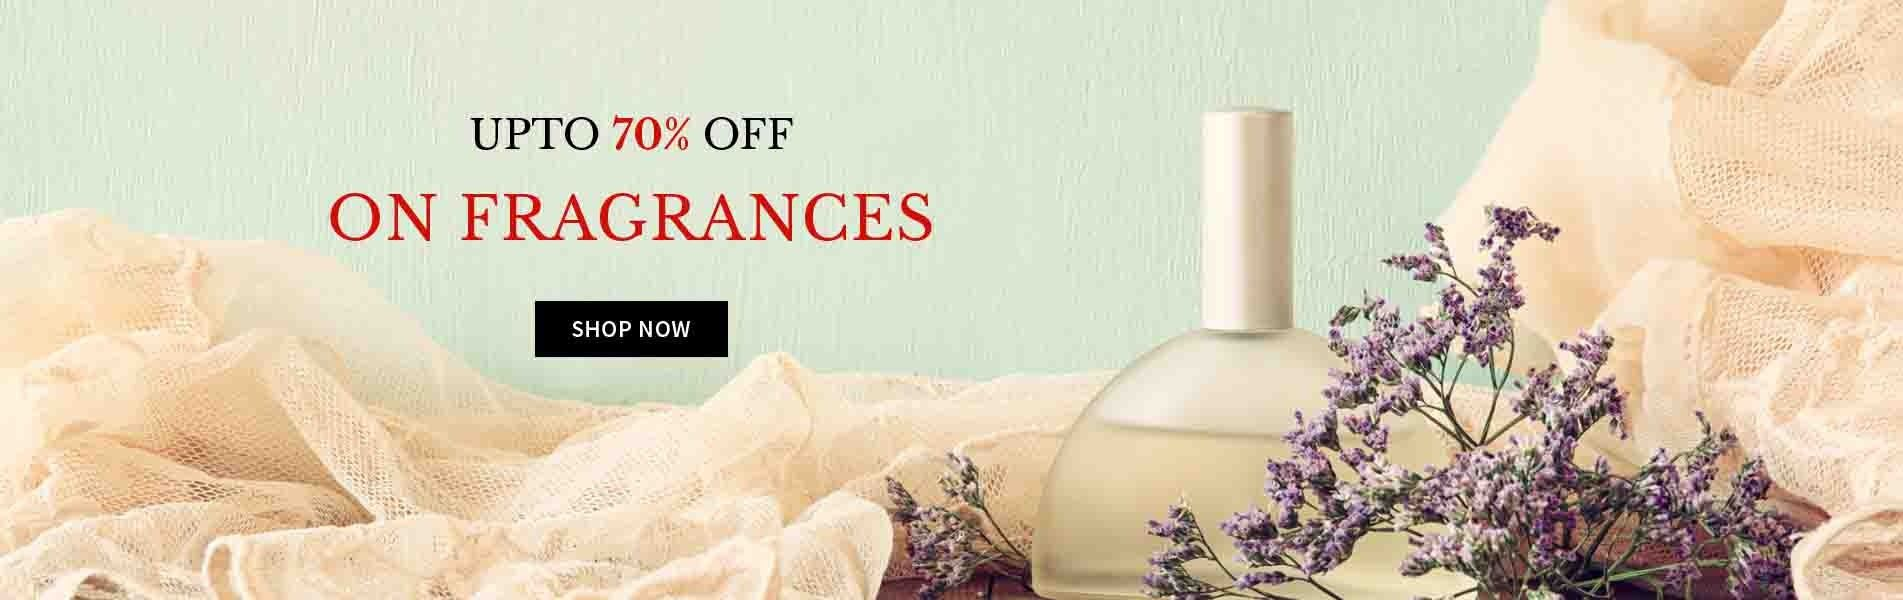 Fragrances Store Buy Authentic Perfumes & Cologne Online